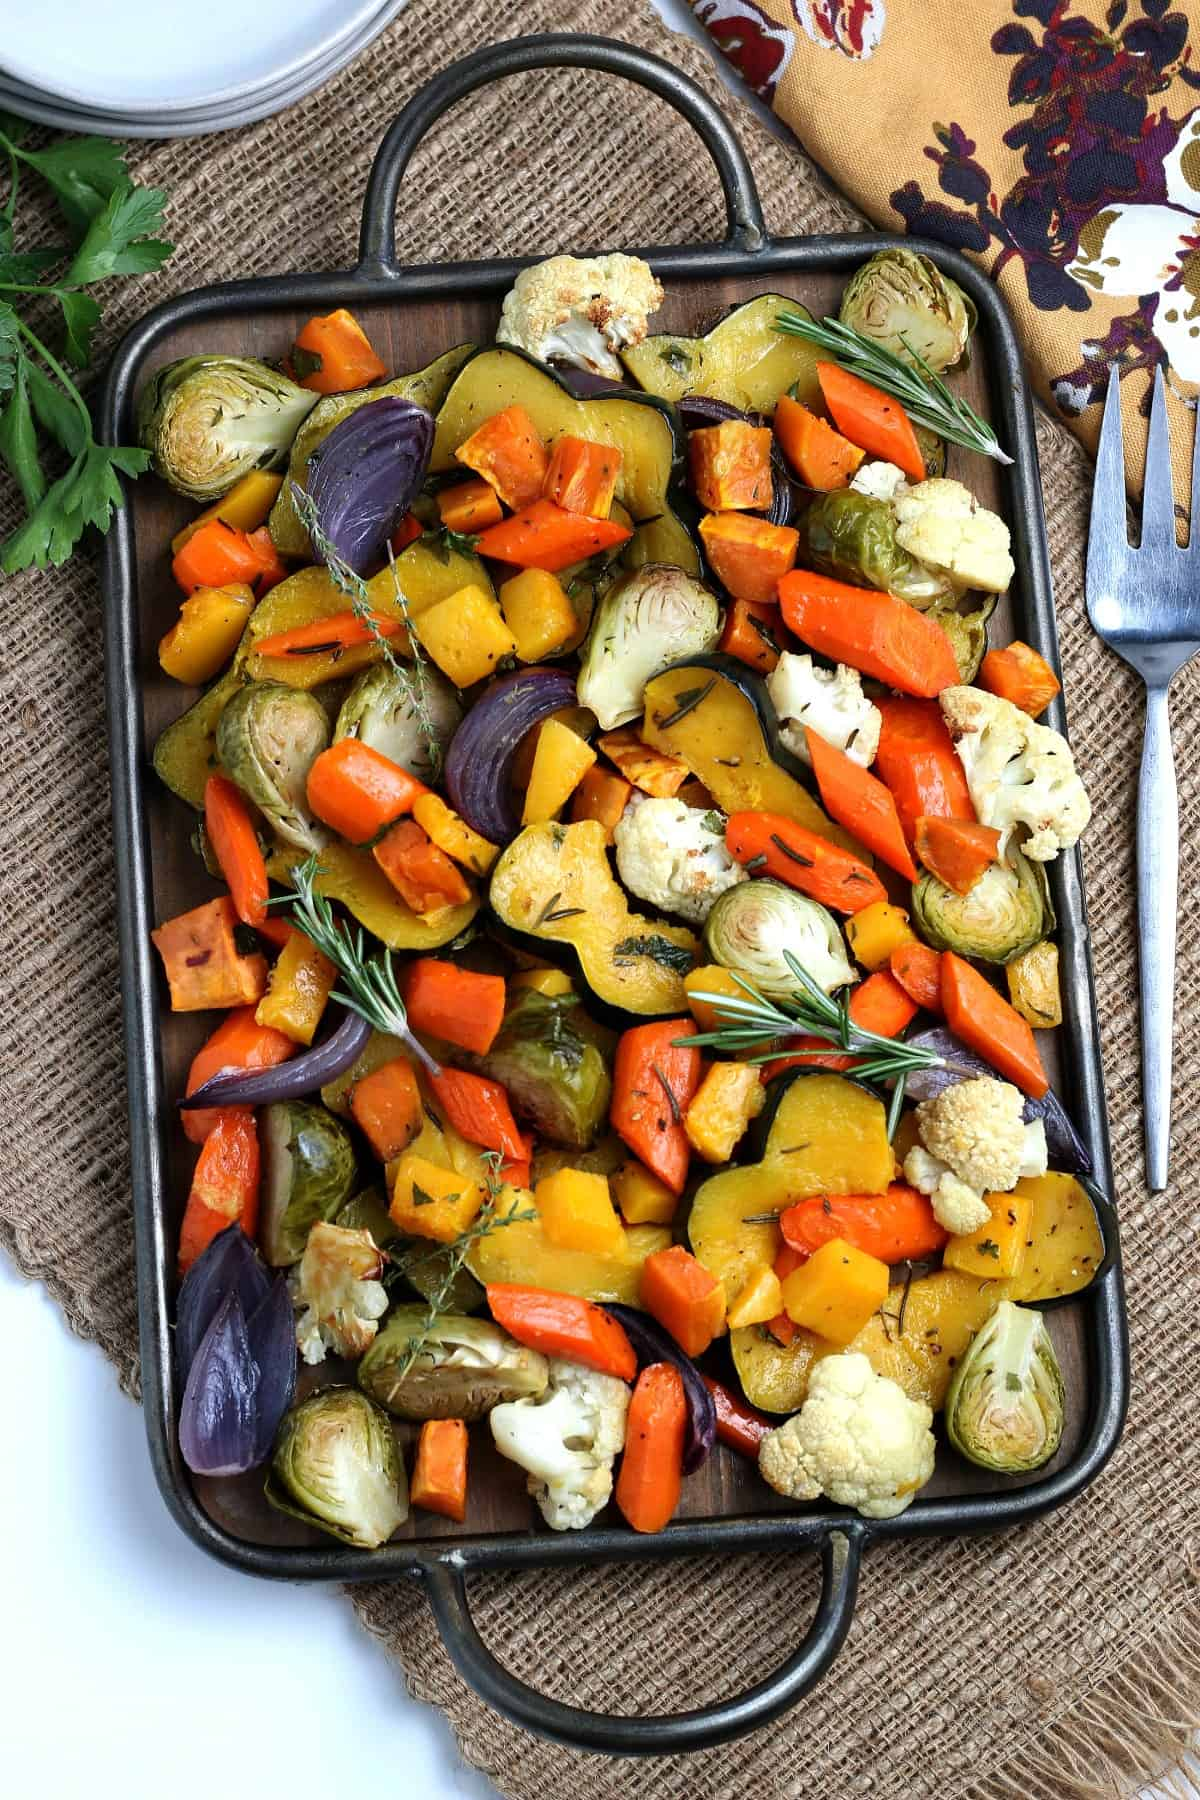 Overhead view of a large platter full of colorful autumn roasted vegetables.